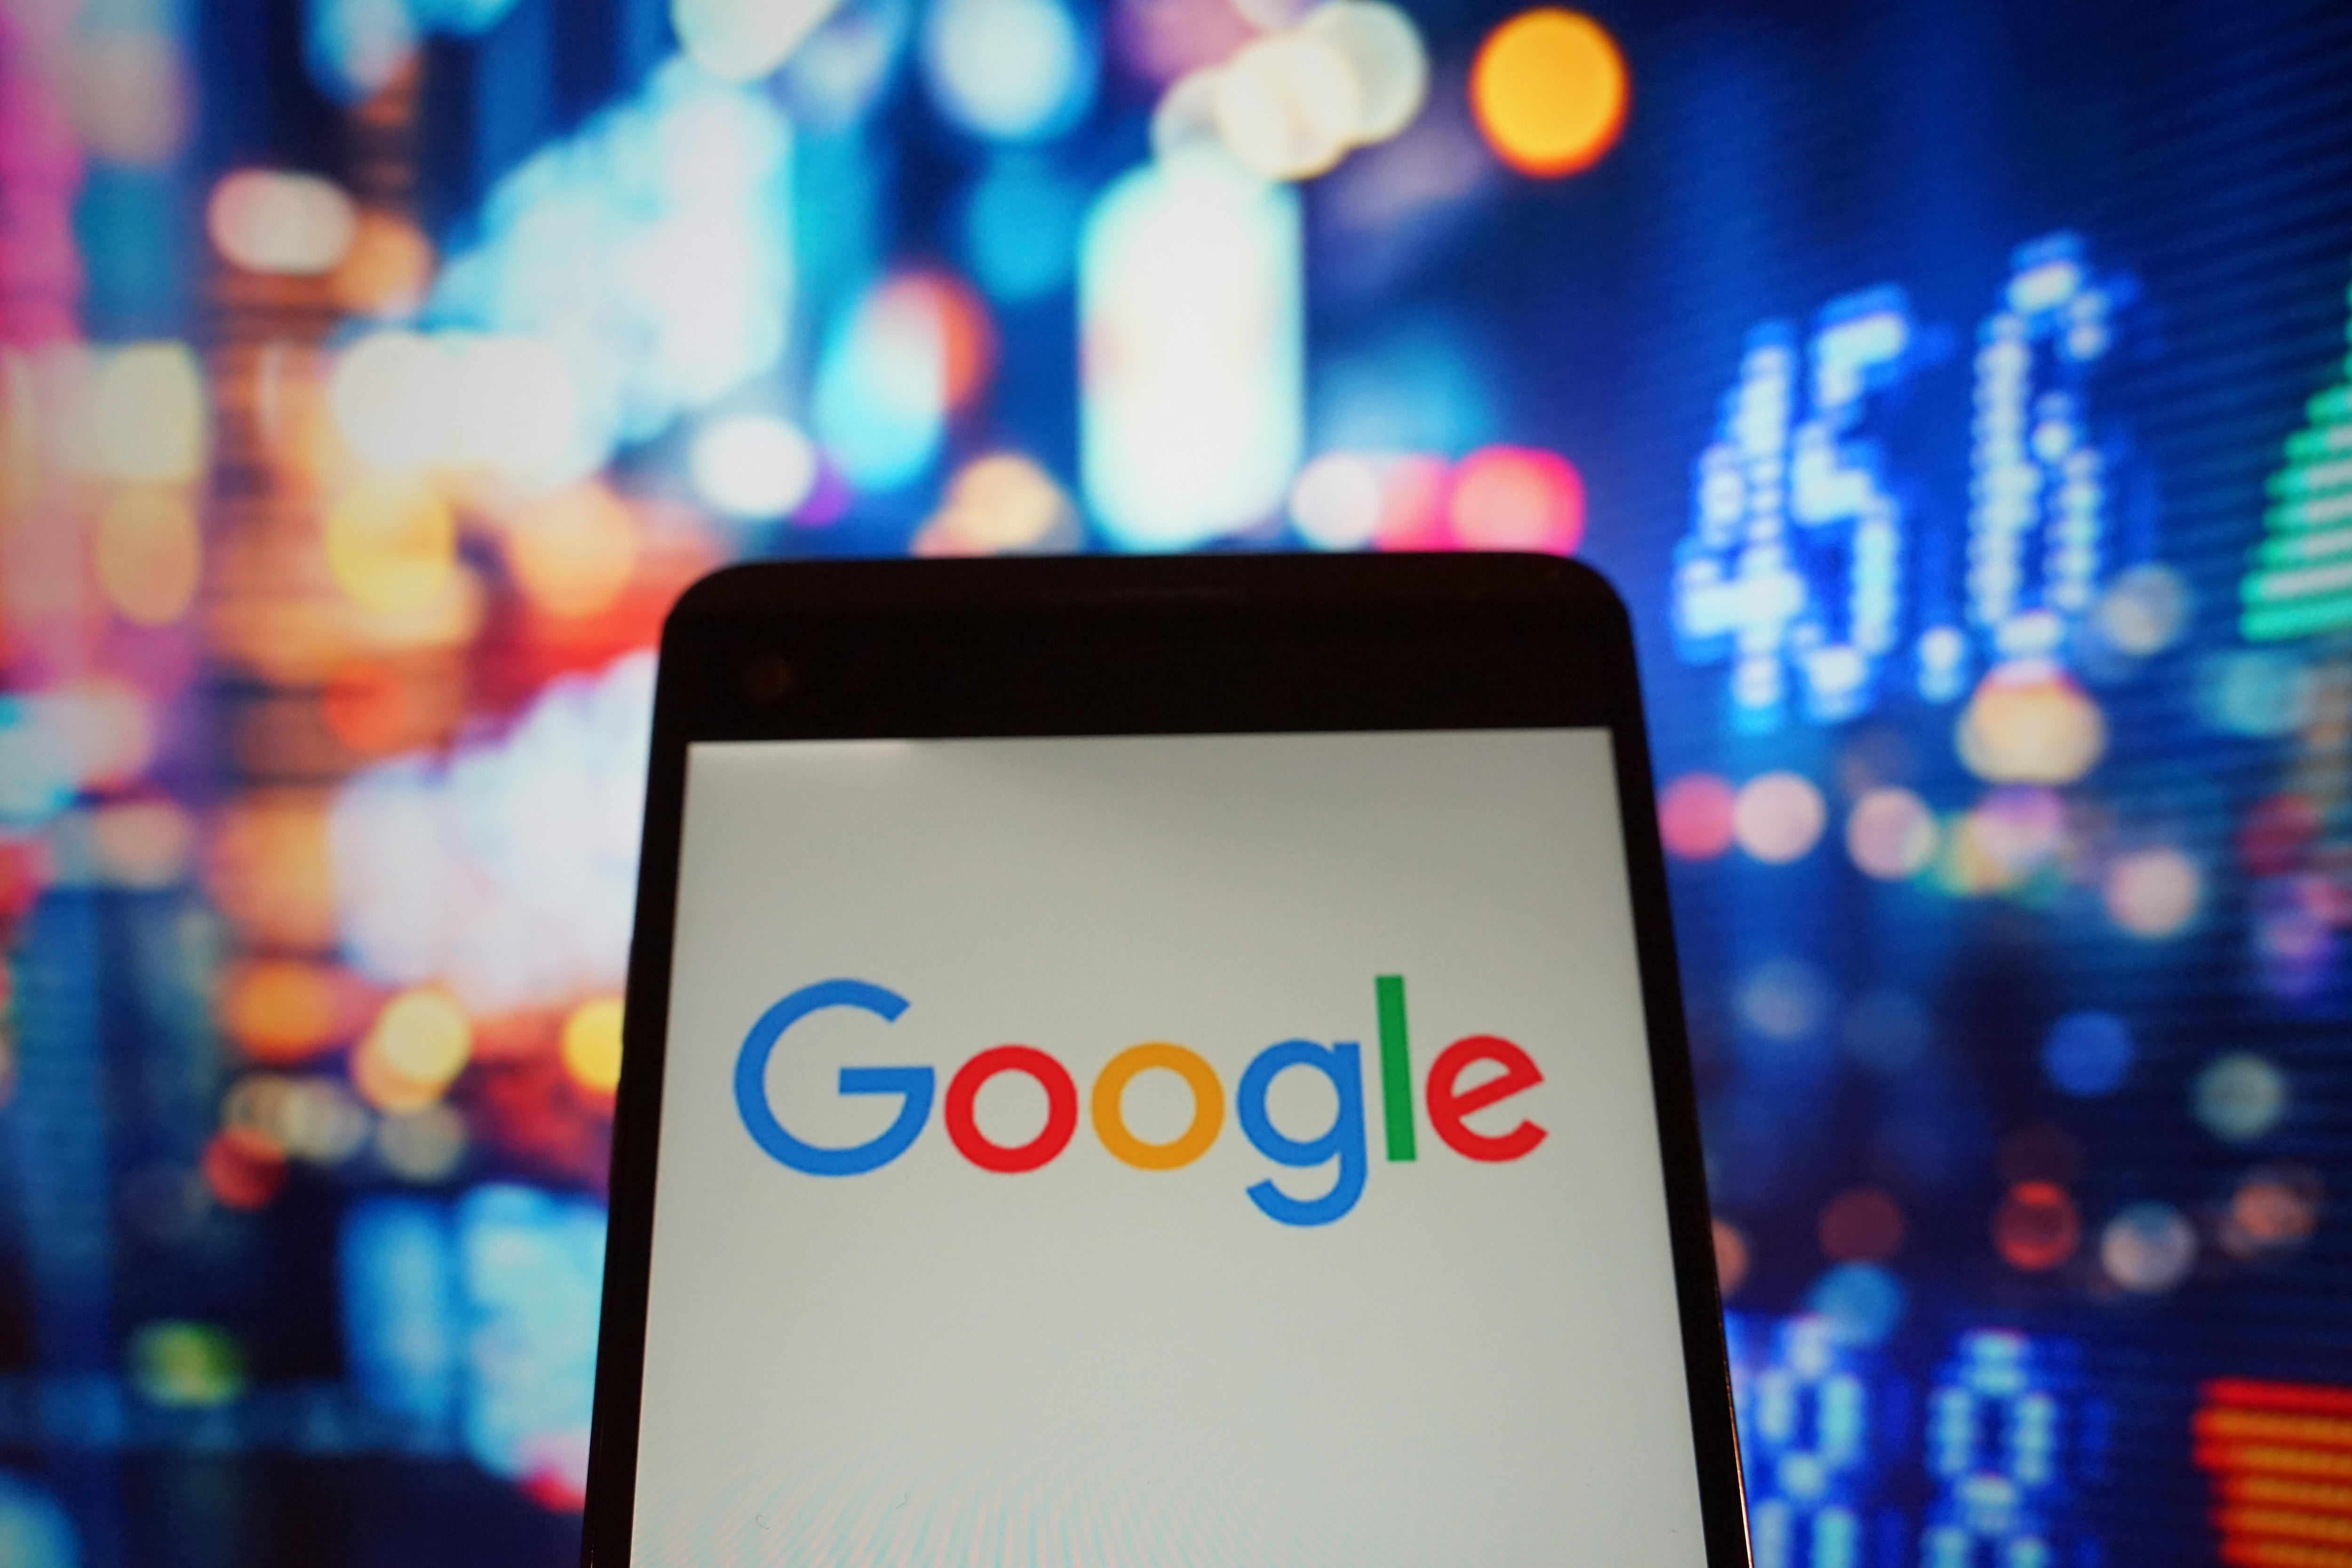 The logo of google is seen in a smartphone